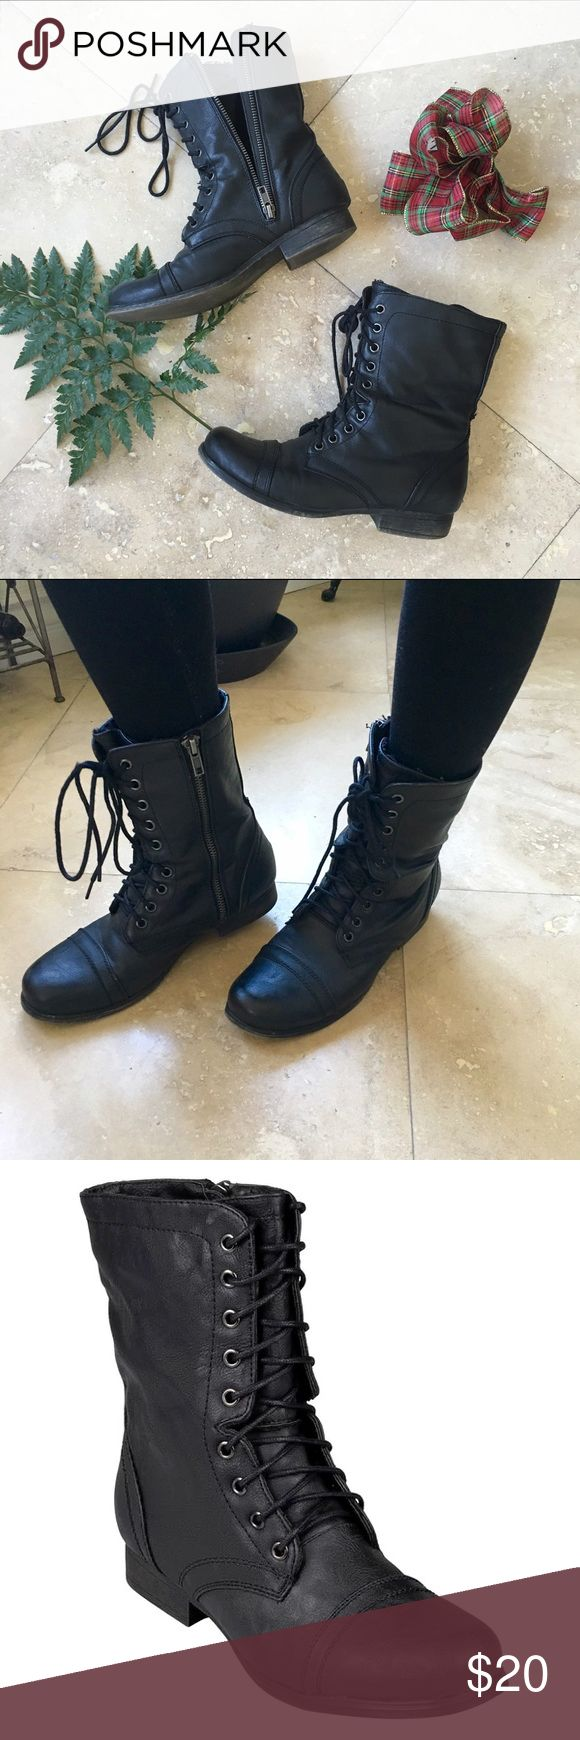 Madden Girl Lace-Up Ankle Combat Boots These are the most comfortable & easy to wear combat boot I've ever purchased. The inside zipper allows me not to have to unlace each time I wear them. The fit is true to size. Excellent used condition. Madden Girl Shoes Ankle Boots & Booties